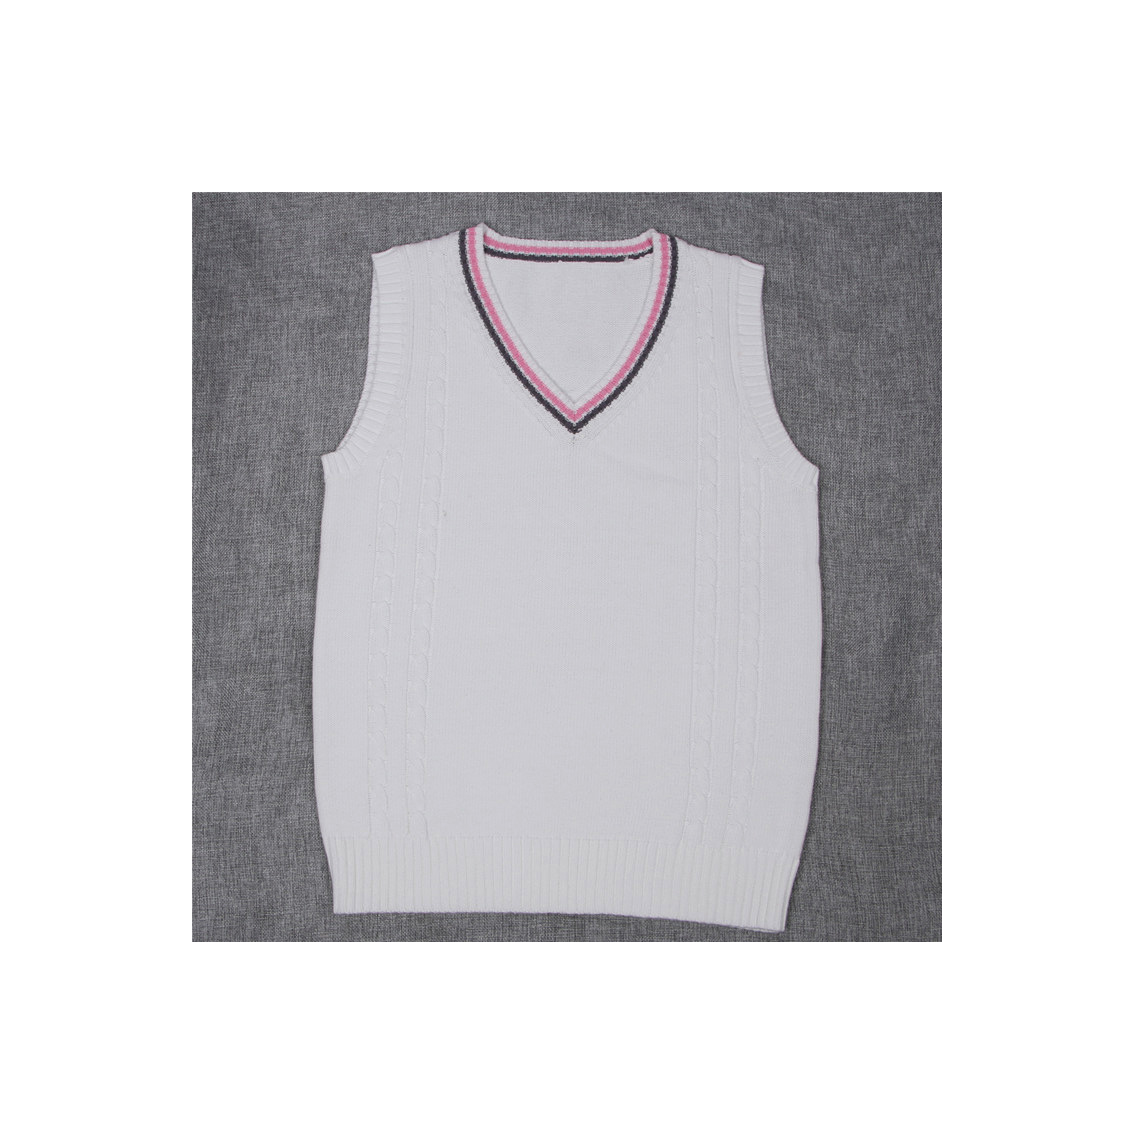 Japanese School Uniform Knitted Vest Women V-Neck Sleeveless Sweater JK Students Pullover off white+pink